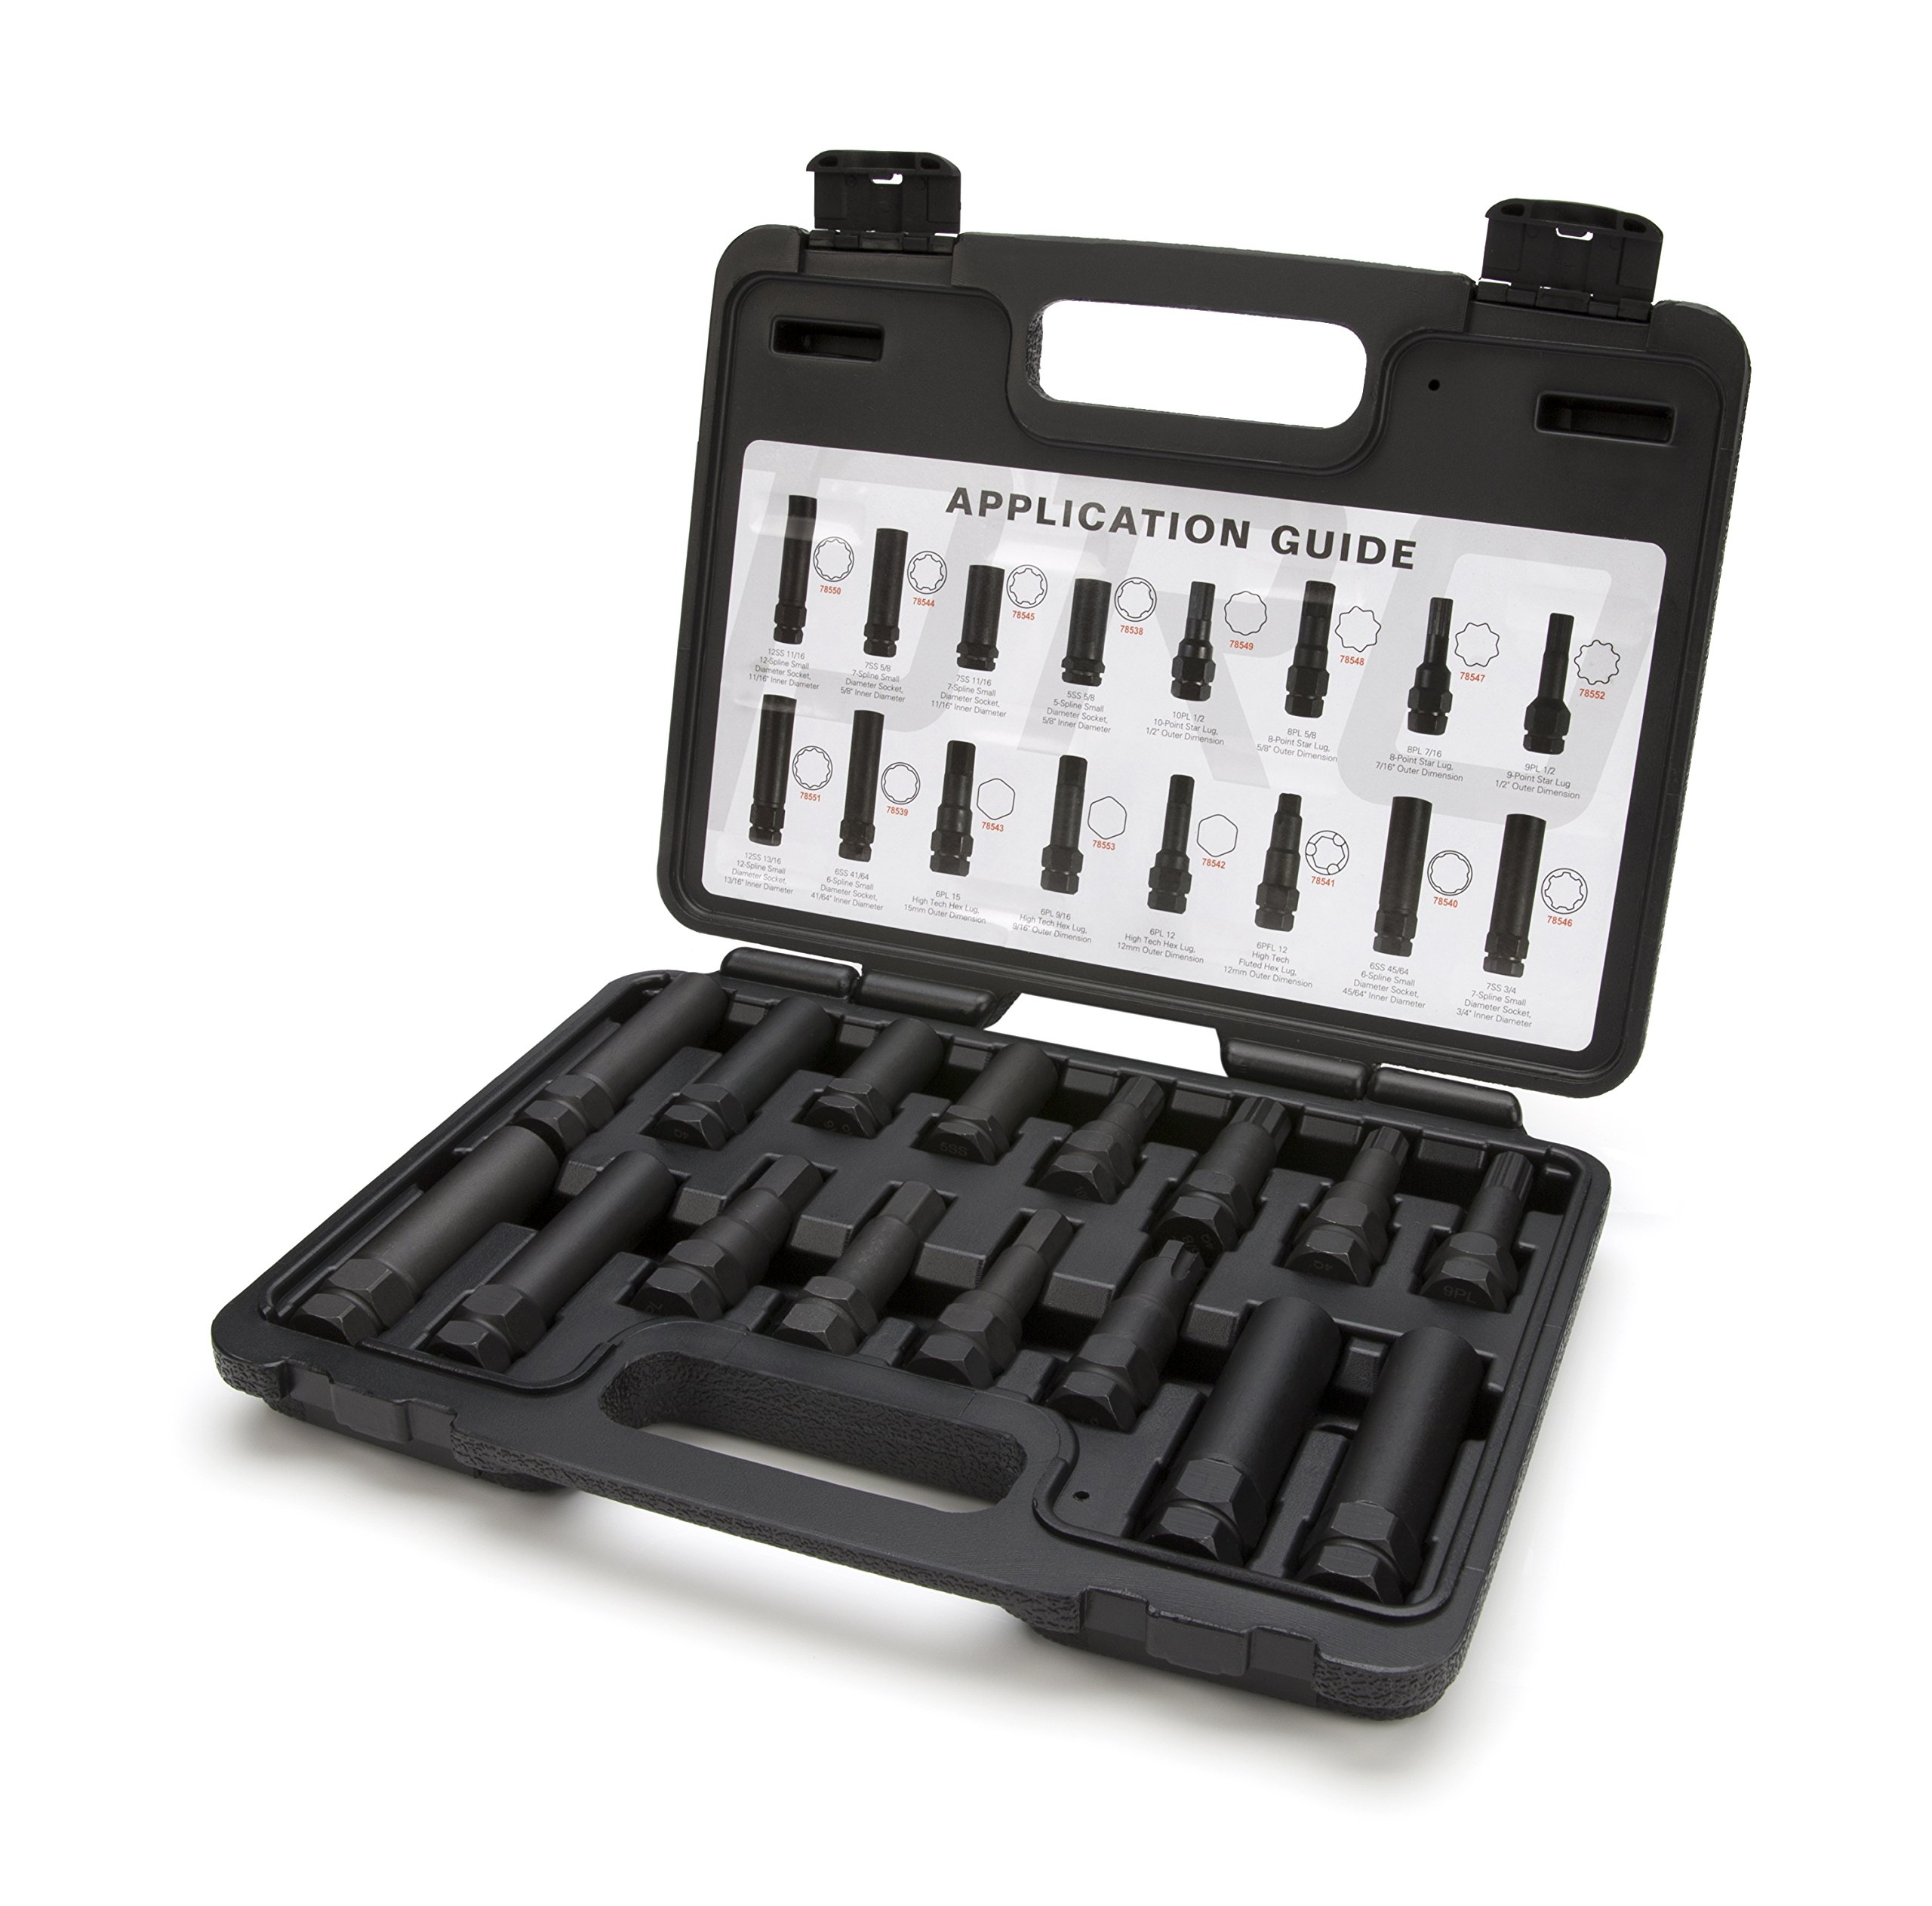 Steelman Pro 78537 16-Piece Locking Lug Nut Master Key Set